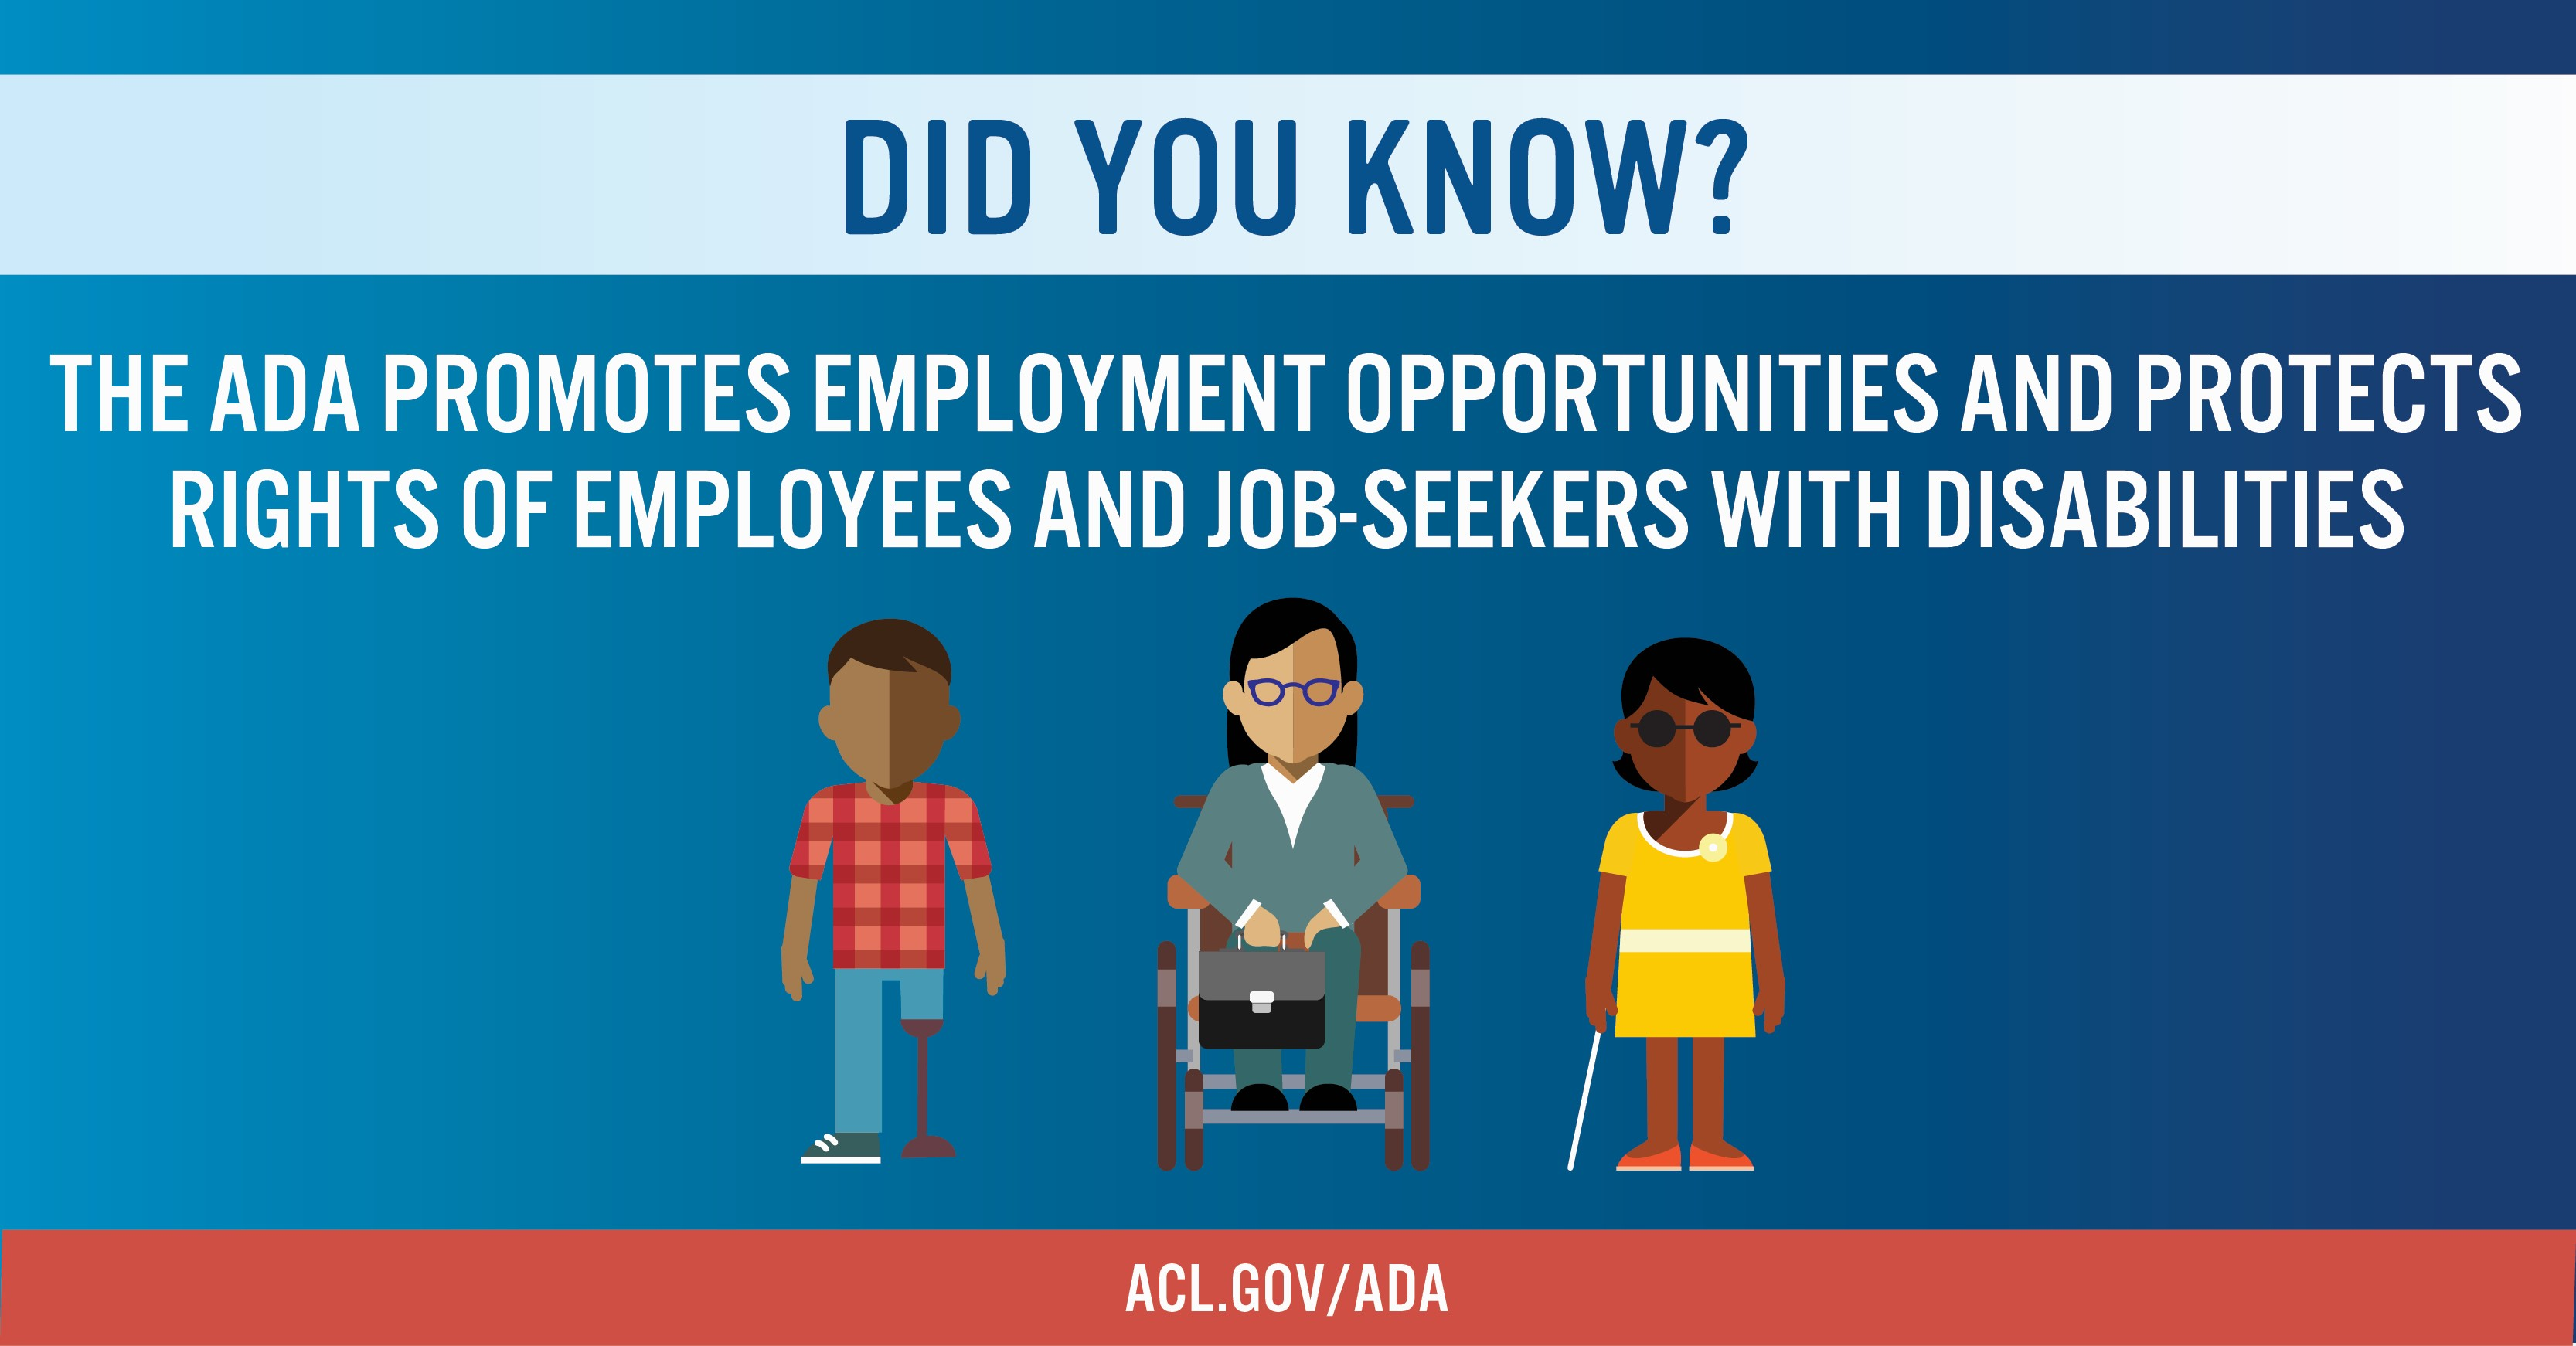 The ADA promotes employment opportunities and protects rights of employees and job seekers with disabilities